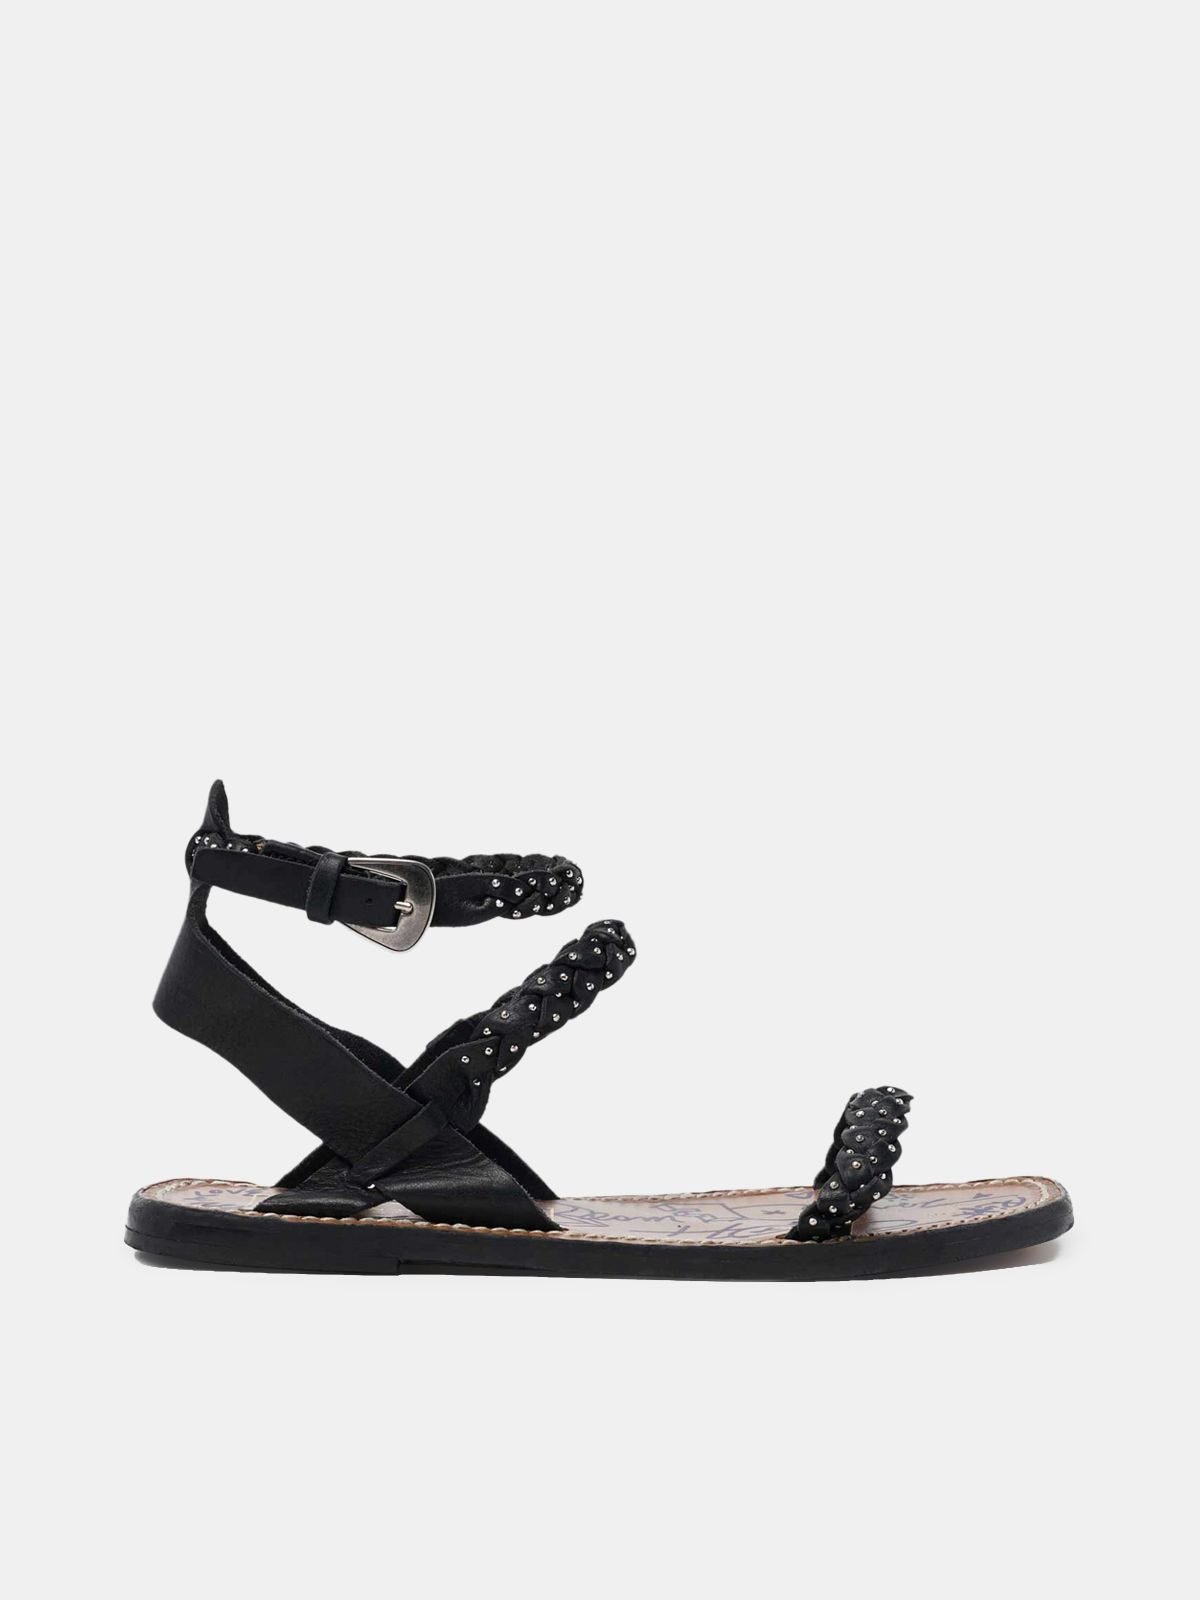 Golden Goose - Molly sandals in black braided leather with stud decoration in